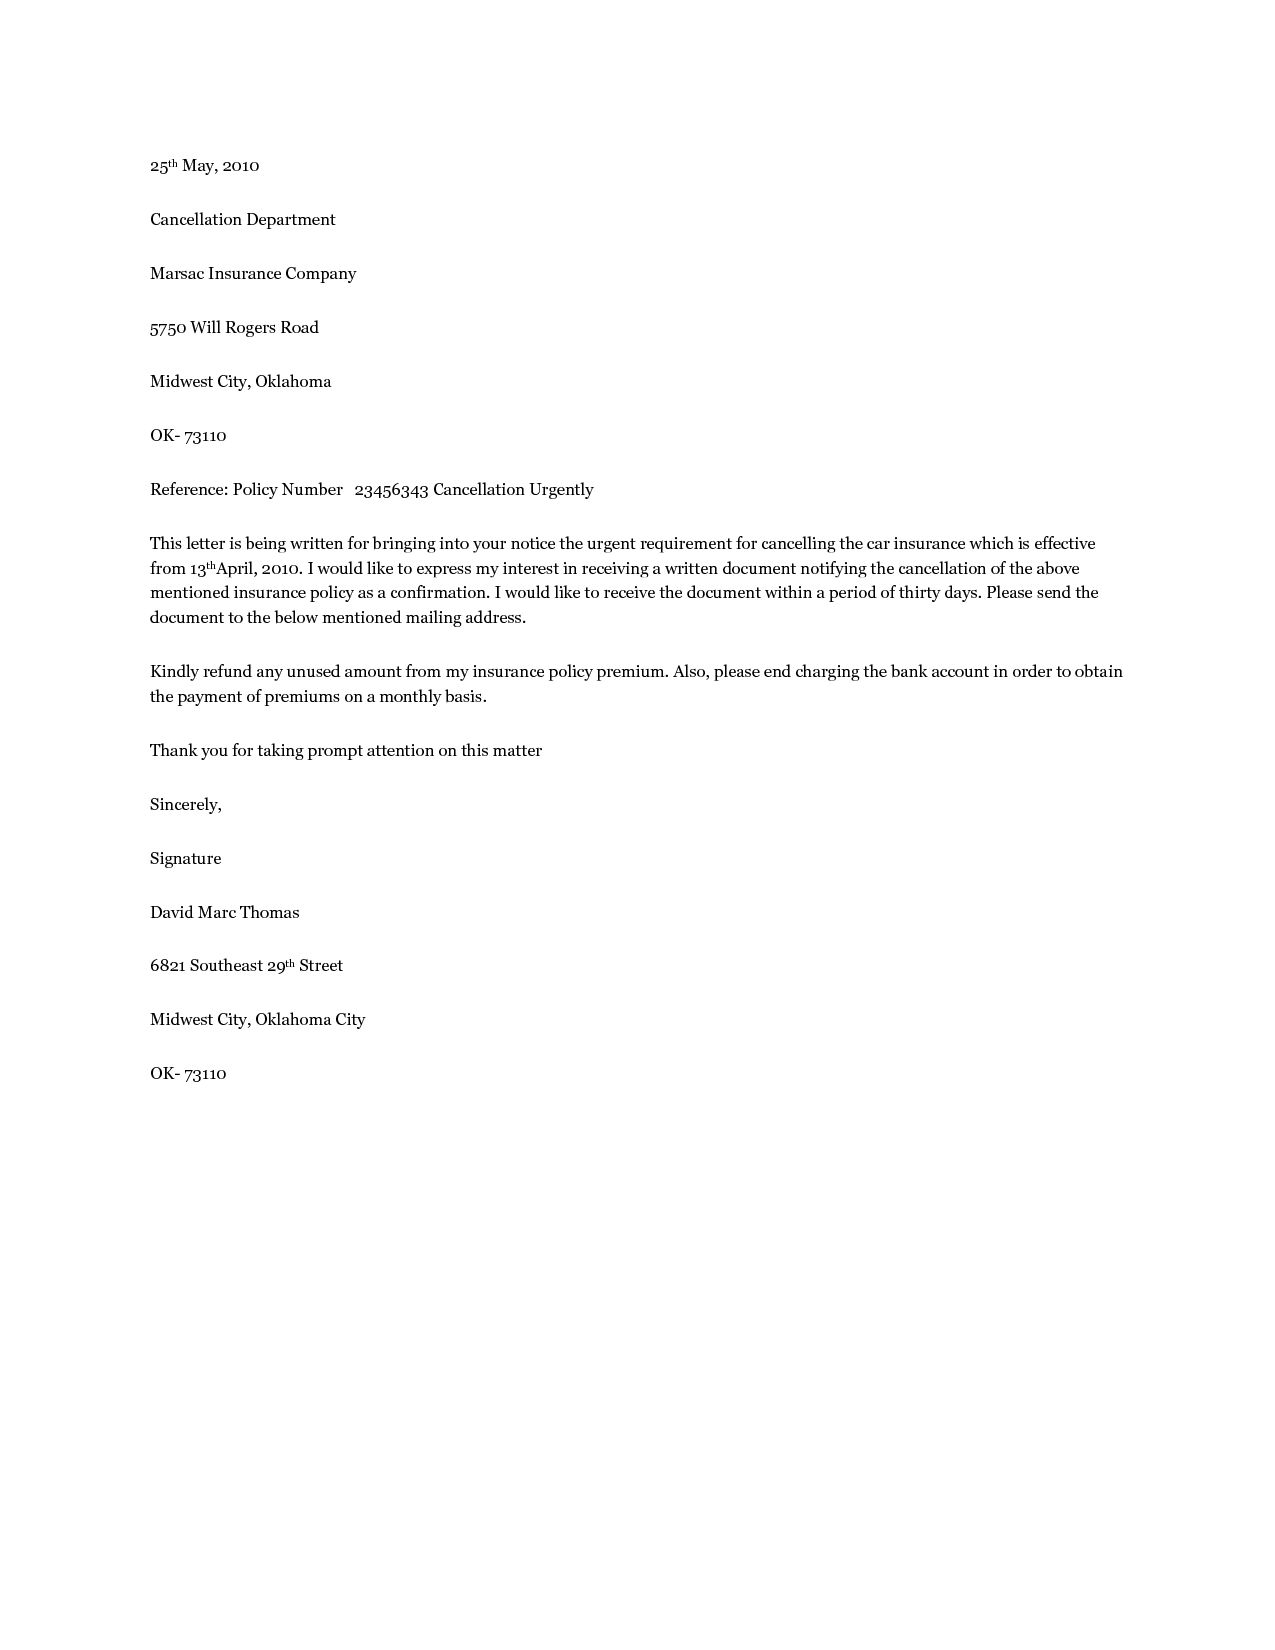 Home Insurance Cancellation Letter Best Template Design Images